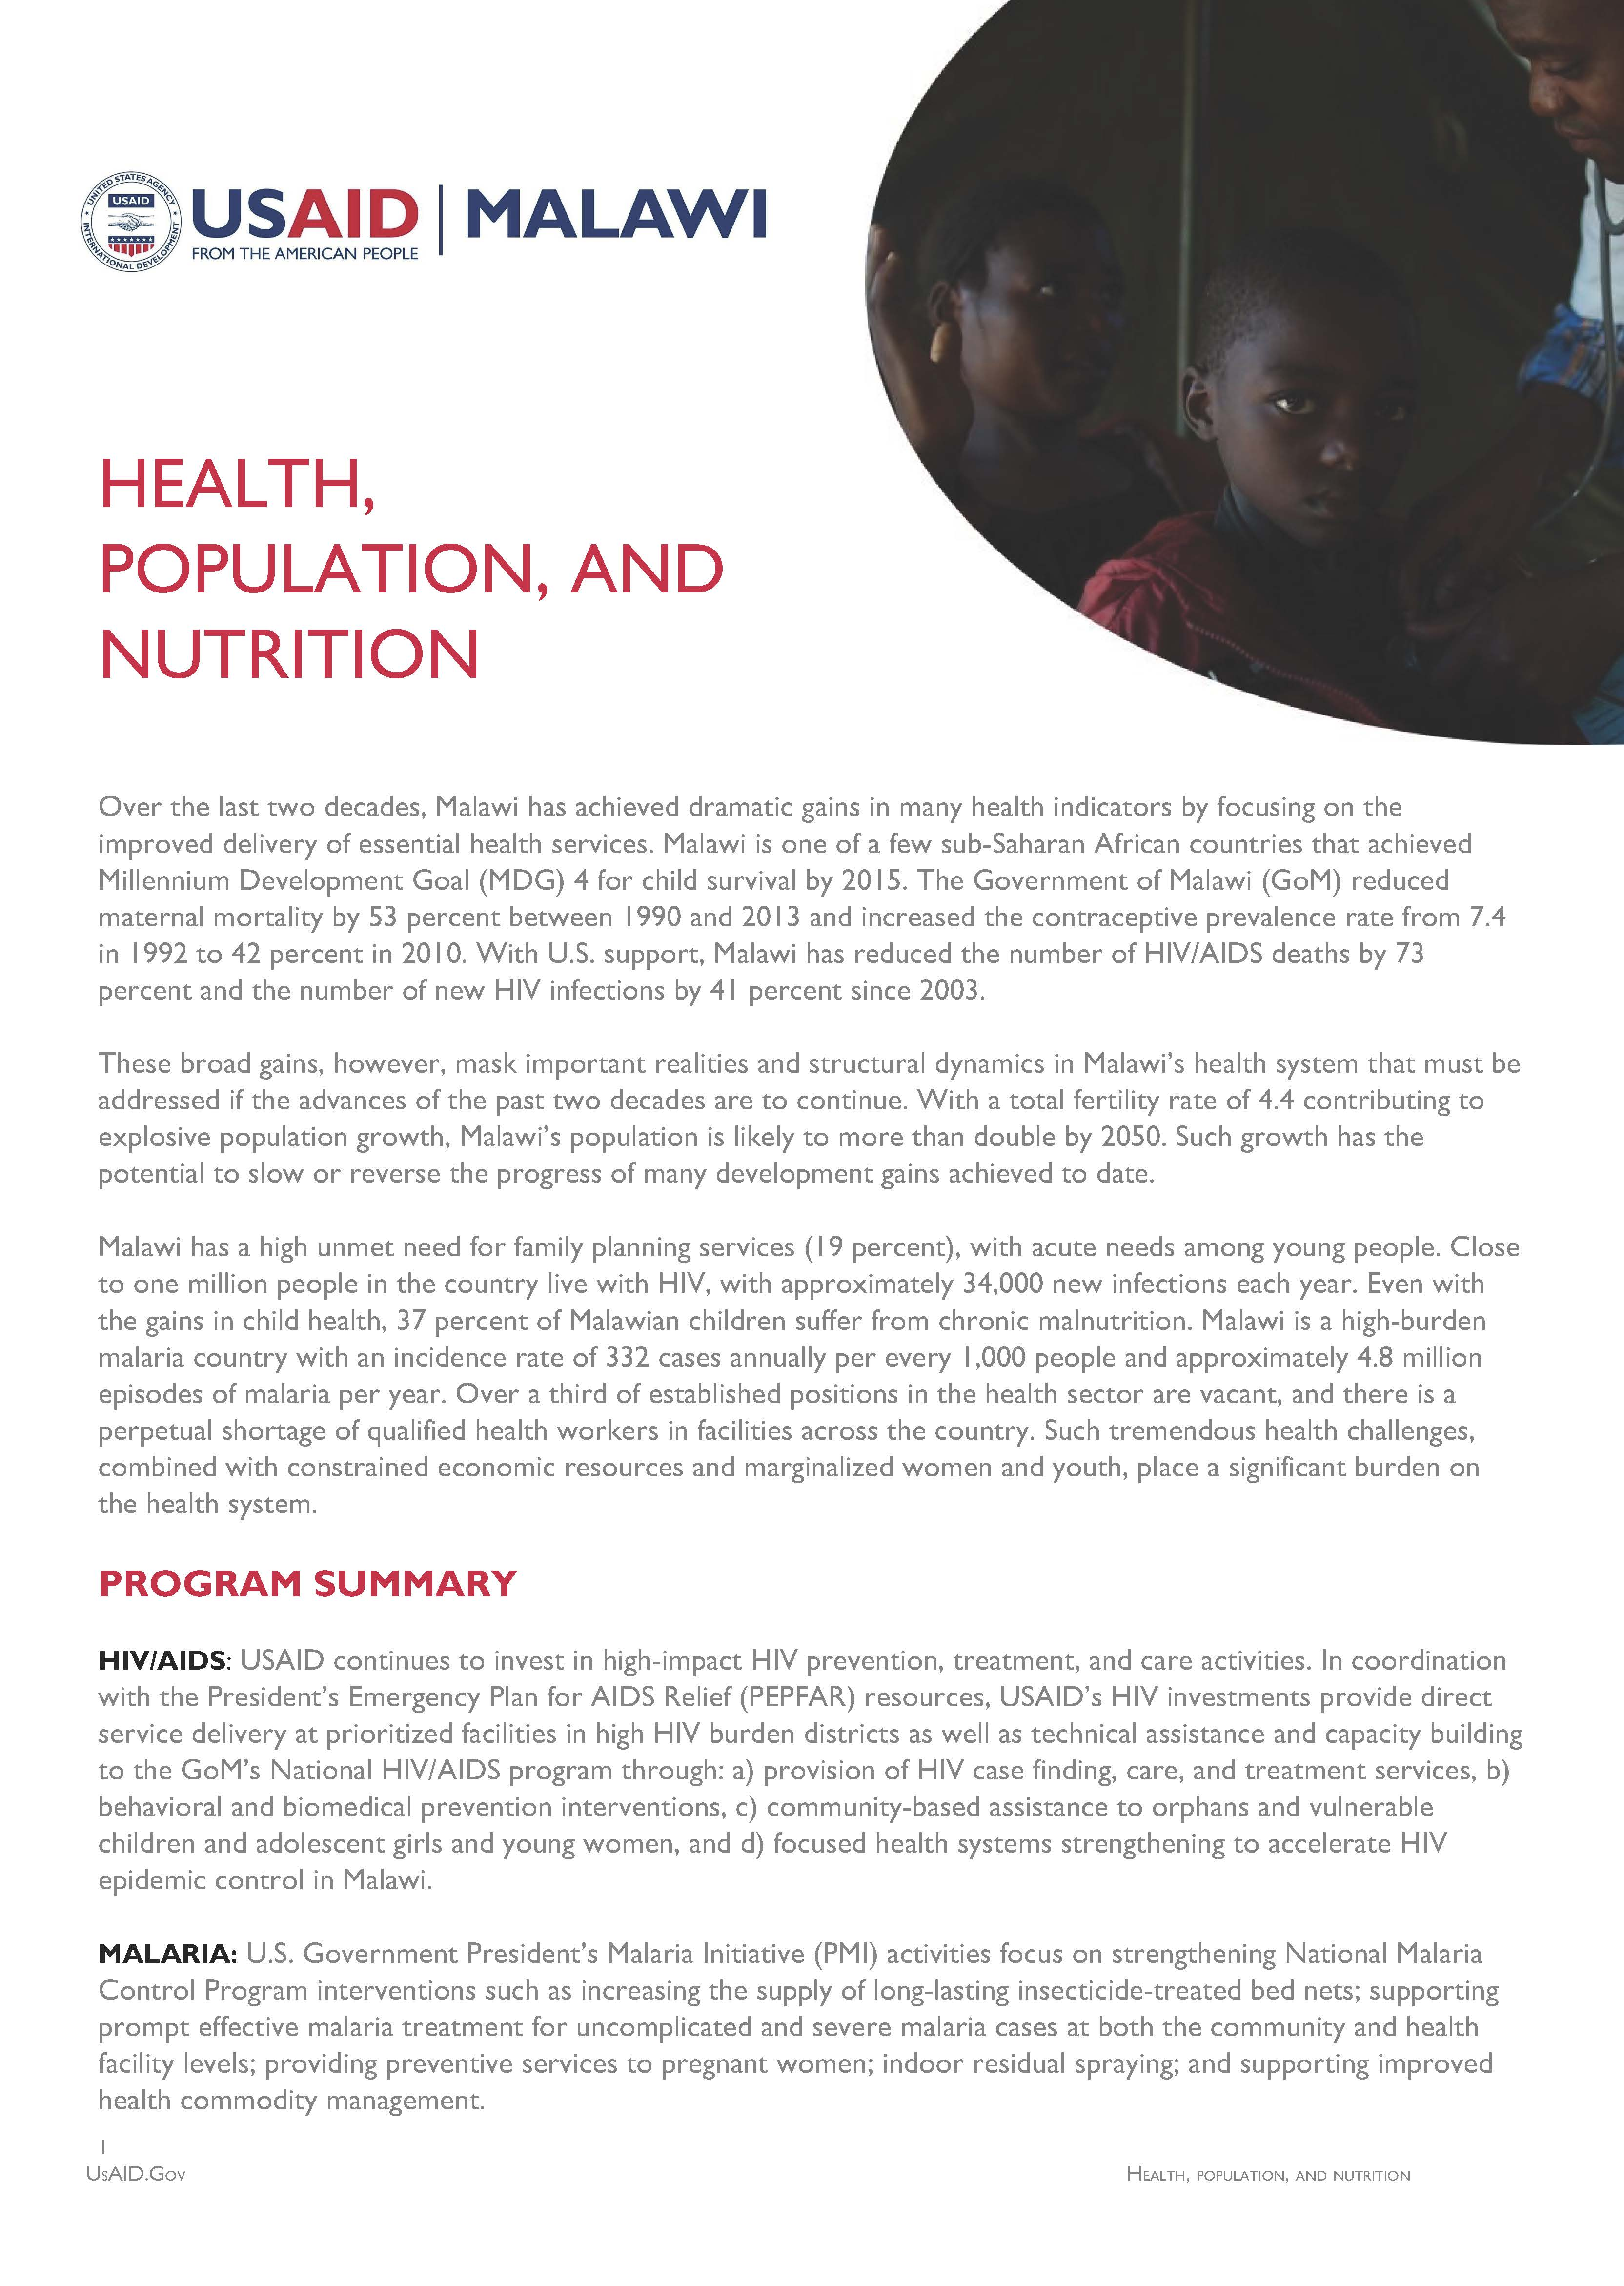 Health, Population and Nutrition Fact Sheet